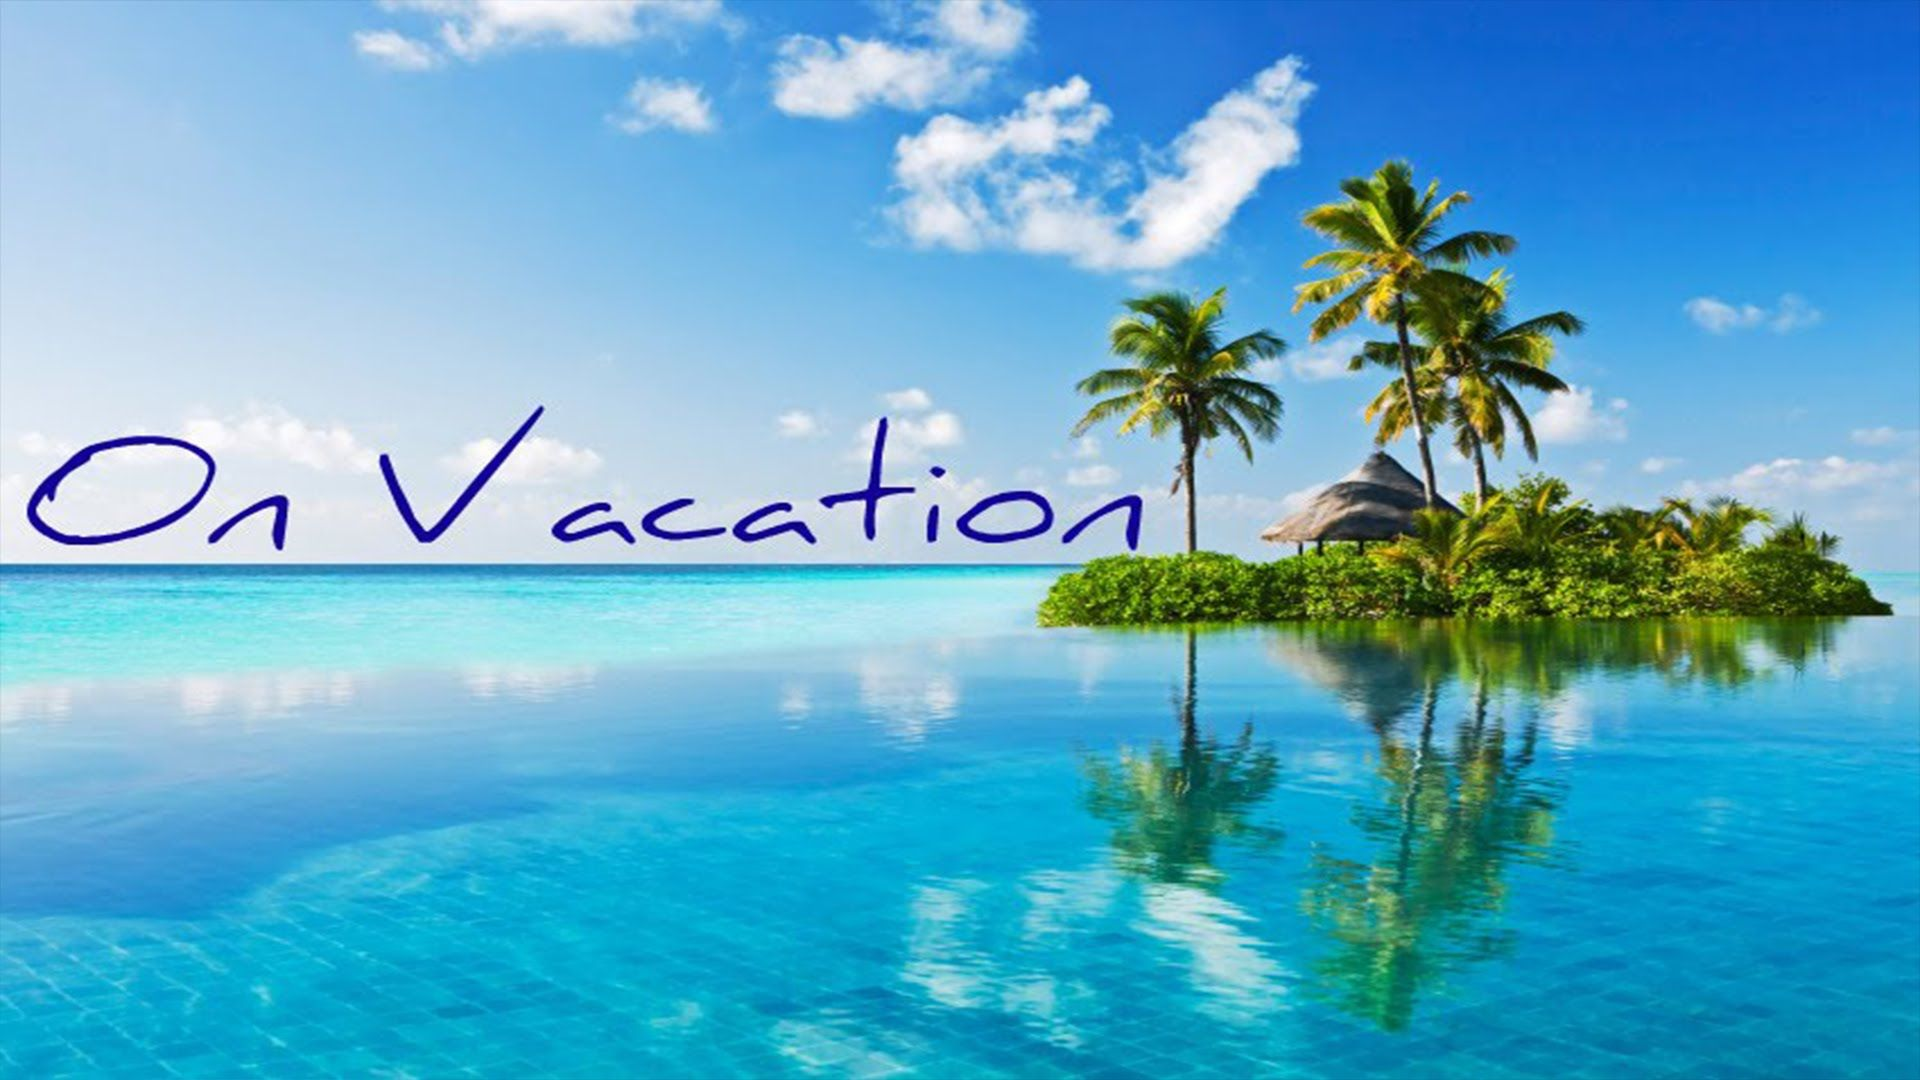 I'm On Vacation Wallpapers - Top Free I'm On Vacation Backgrounds ...